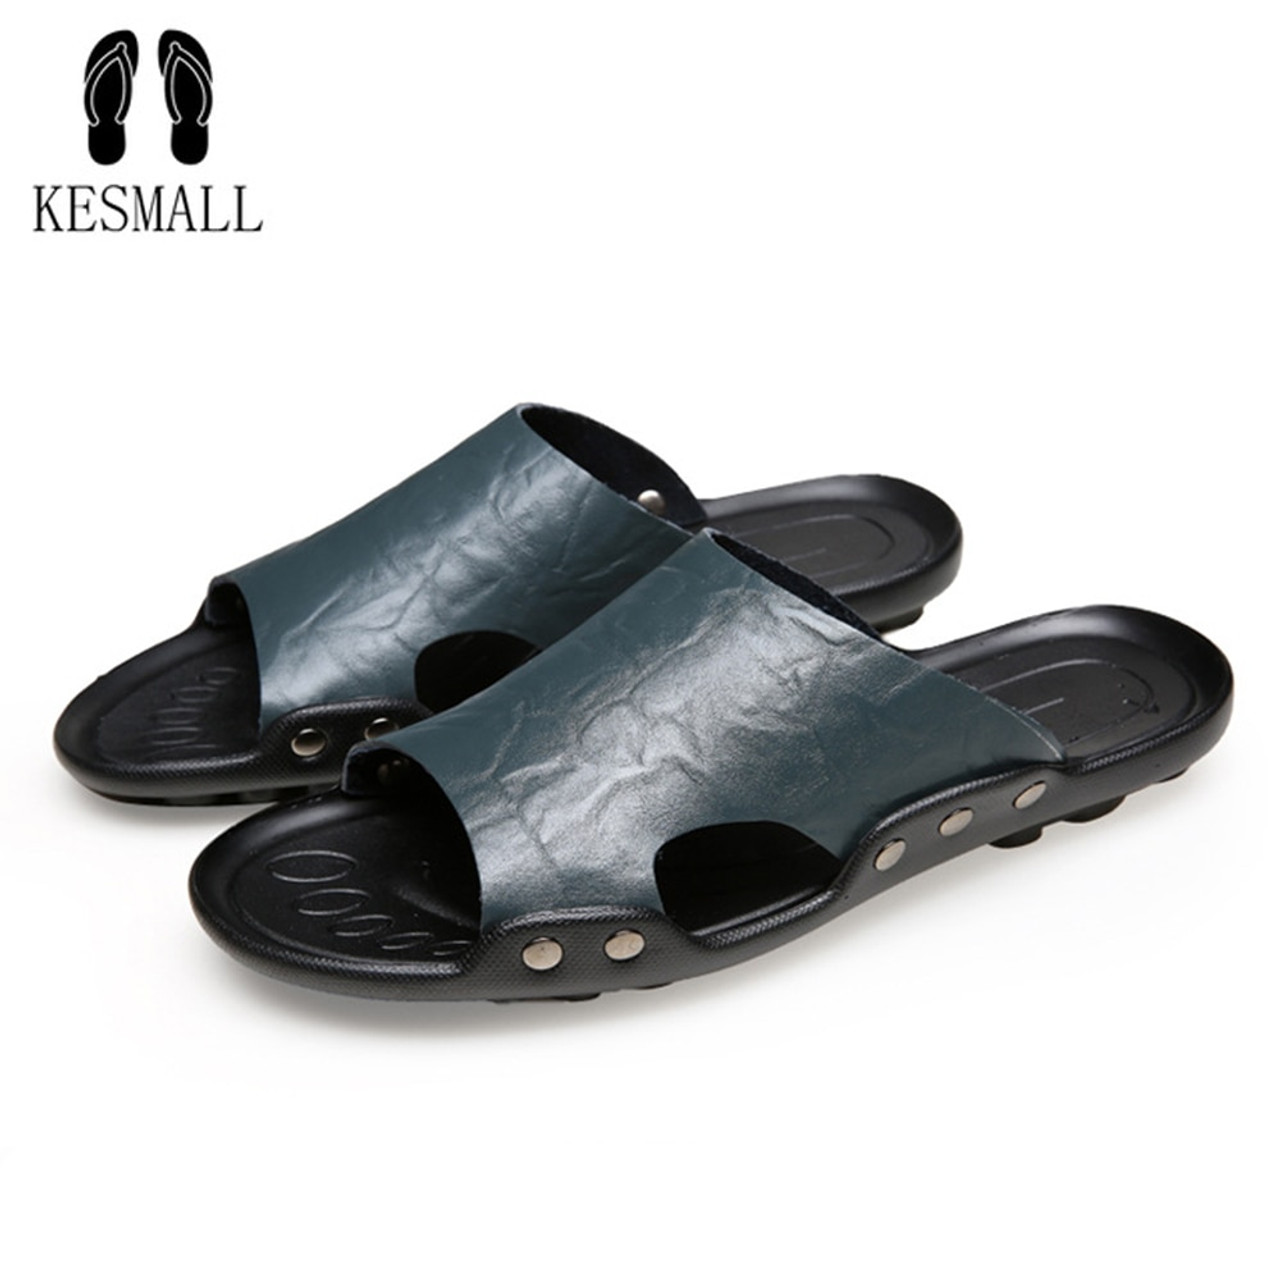 a49559ef1 ... KESMALL 2018 New Men s Flip Flops Genuine Leather Slippers Summer  Fashion Beach Slippers Sandals Shoes For ...